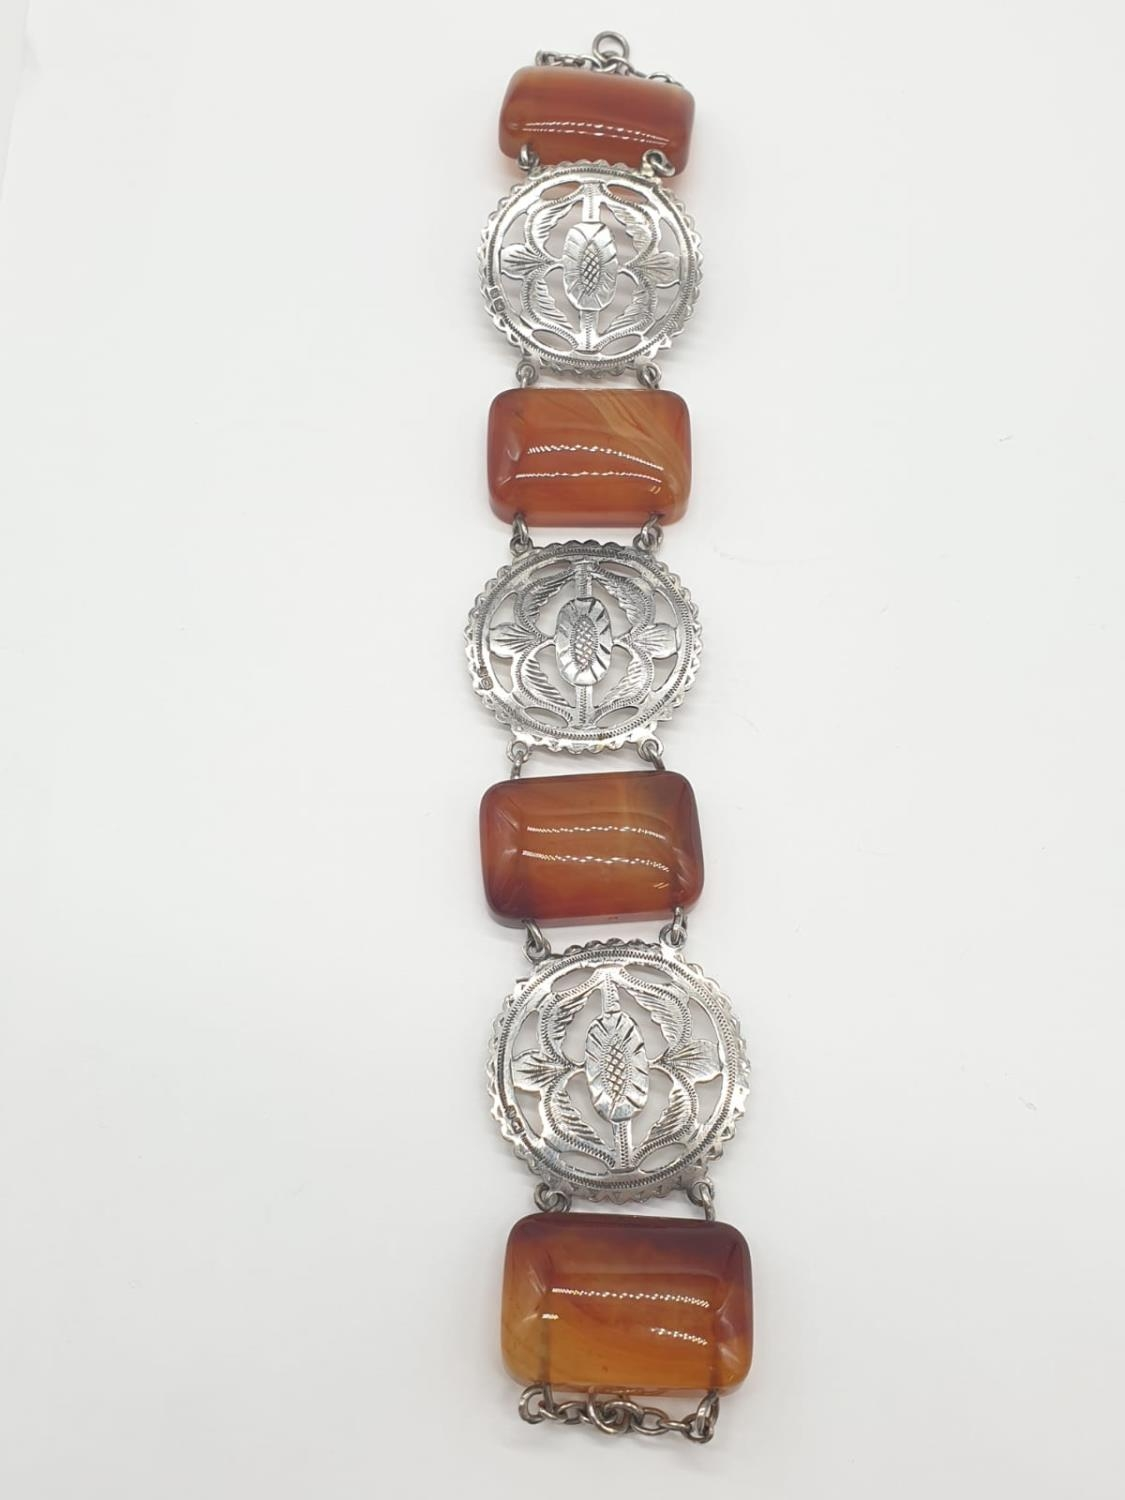 Large Silver agate Scottish bracelet, weight 70g and 22cm long and 3cm wide - Image 3 of 5